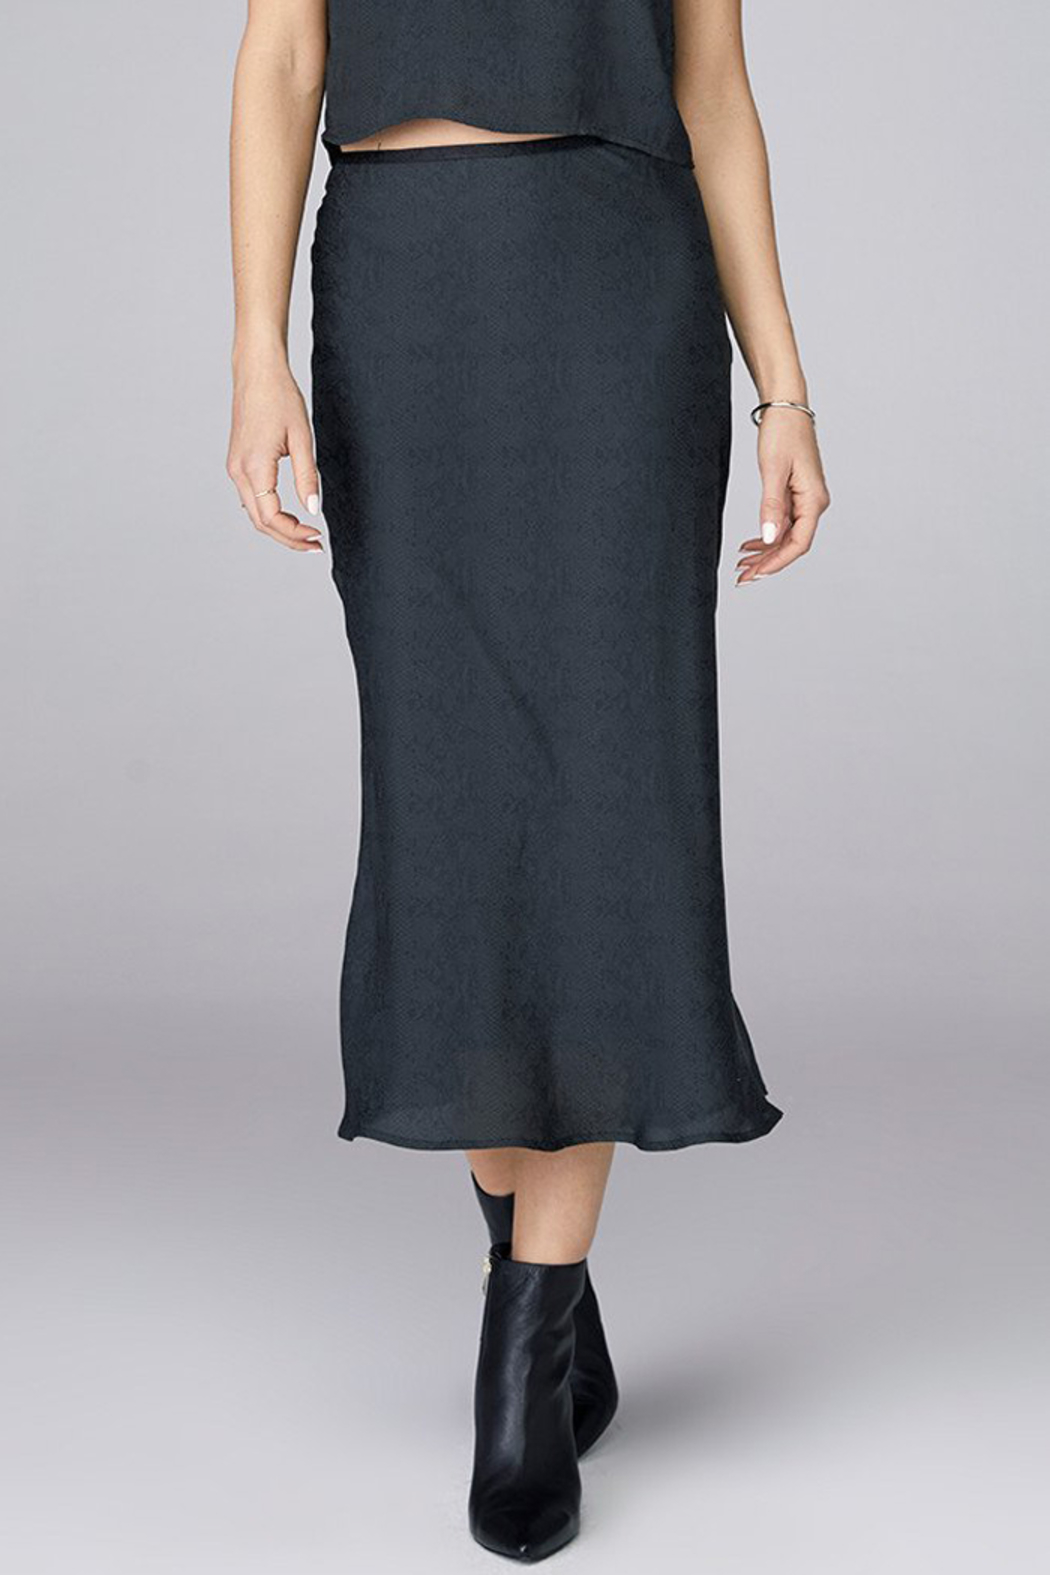 David Lerner  BIAS MIDI SKIRT - Main Image